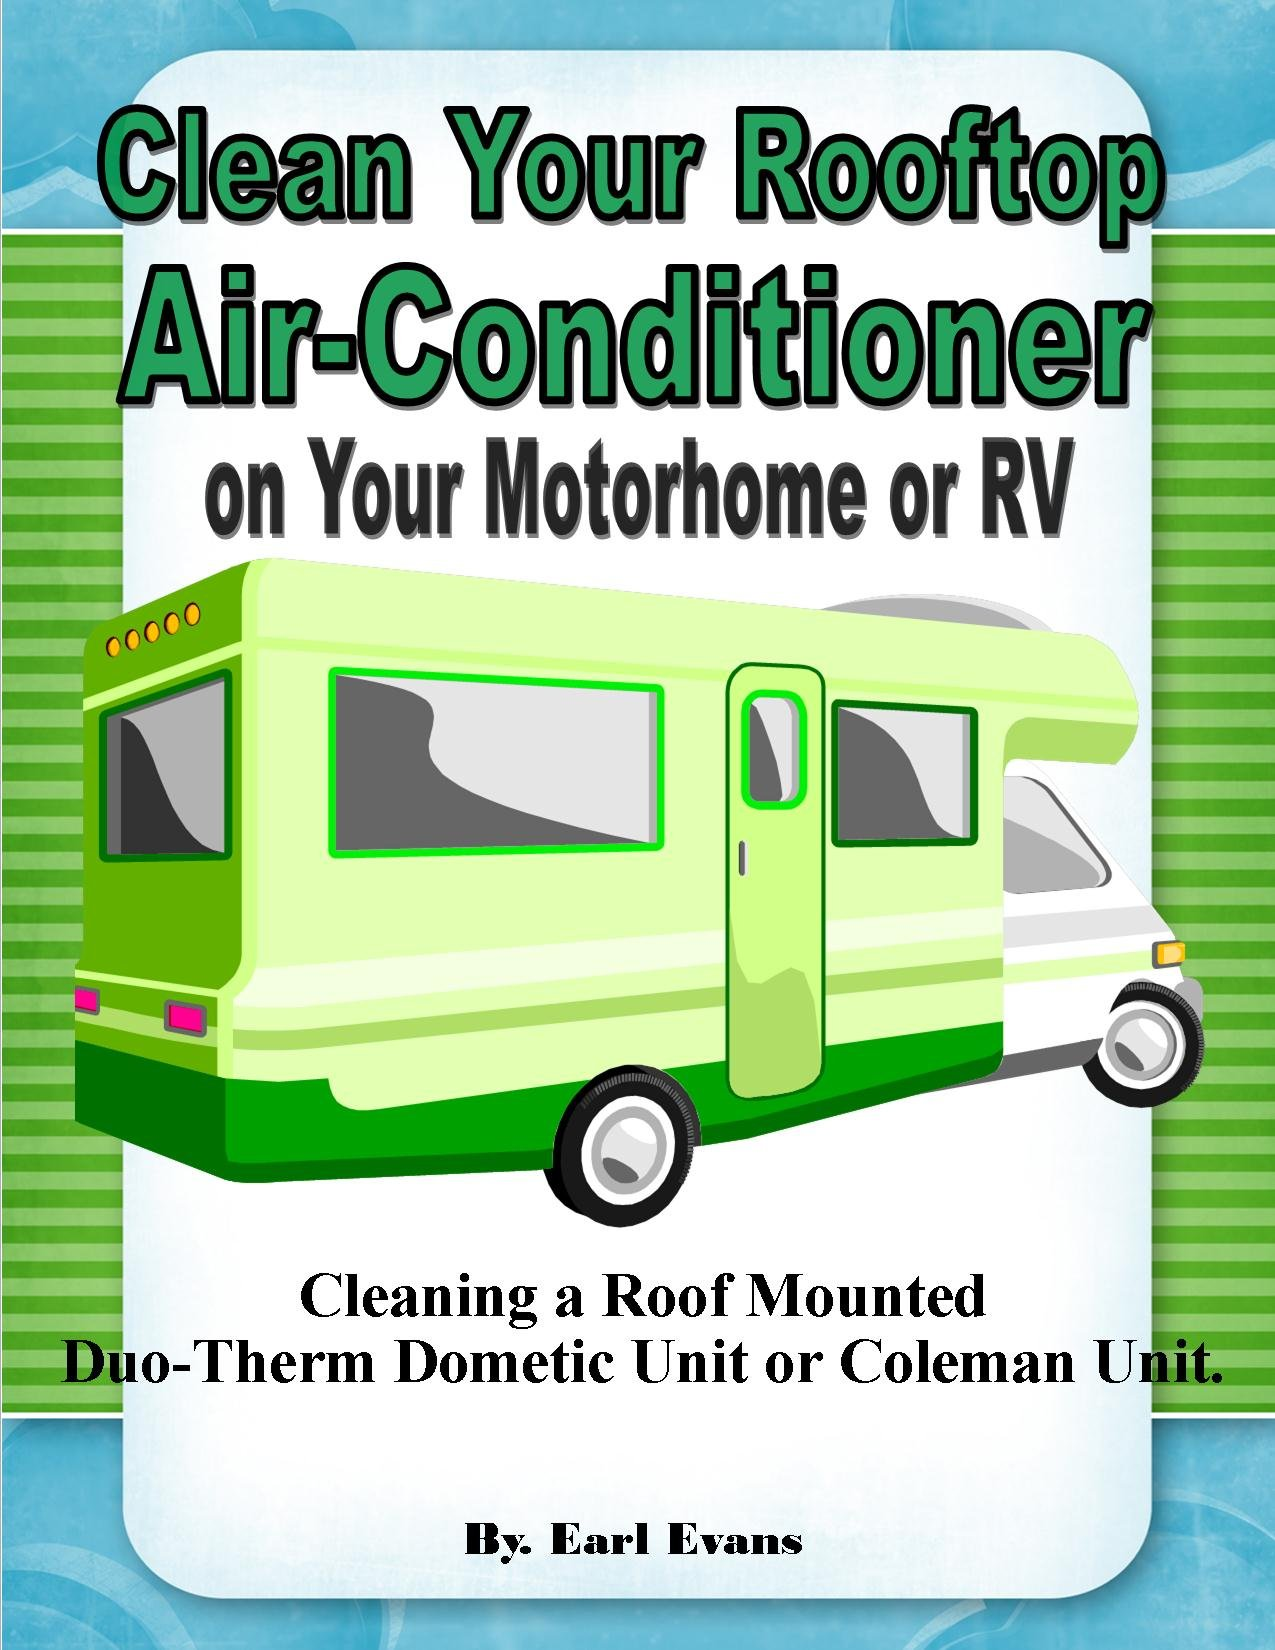 Rooftop Conditioner Motorhome Duo Therm Dometic ebook